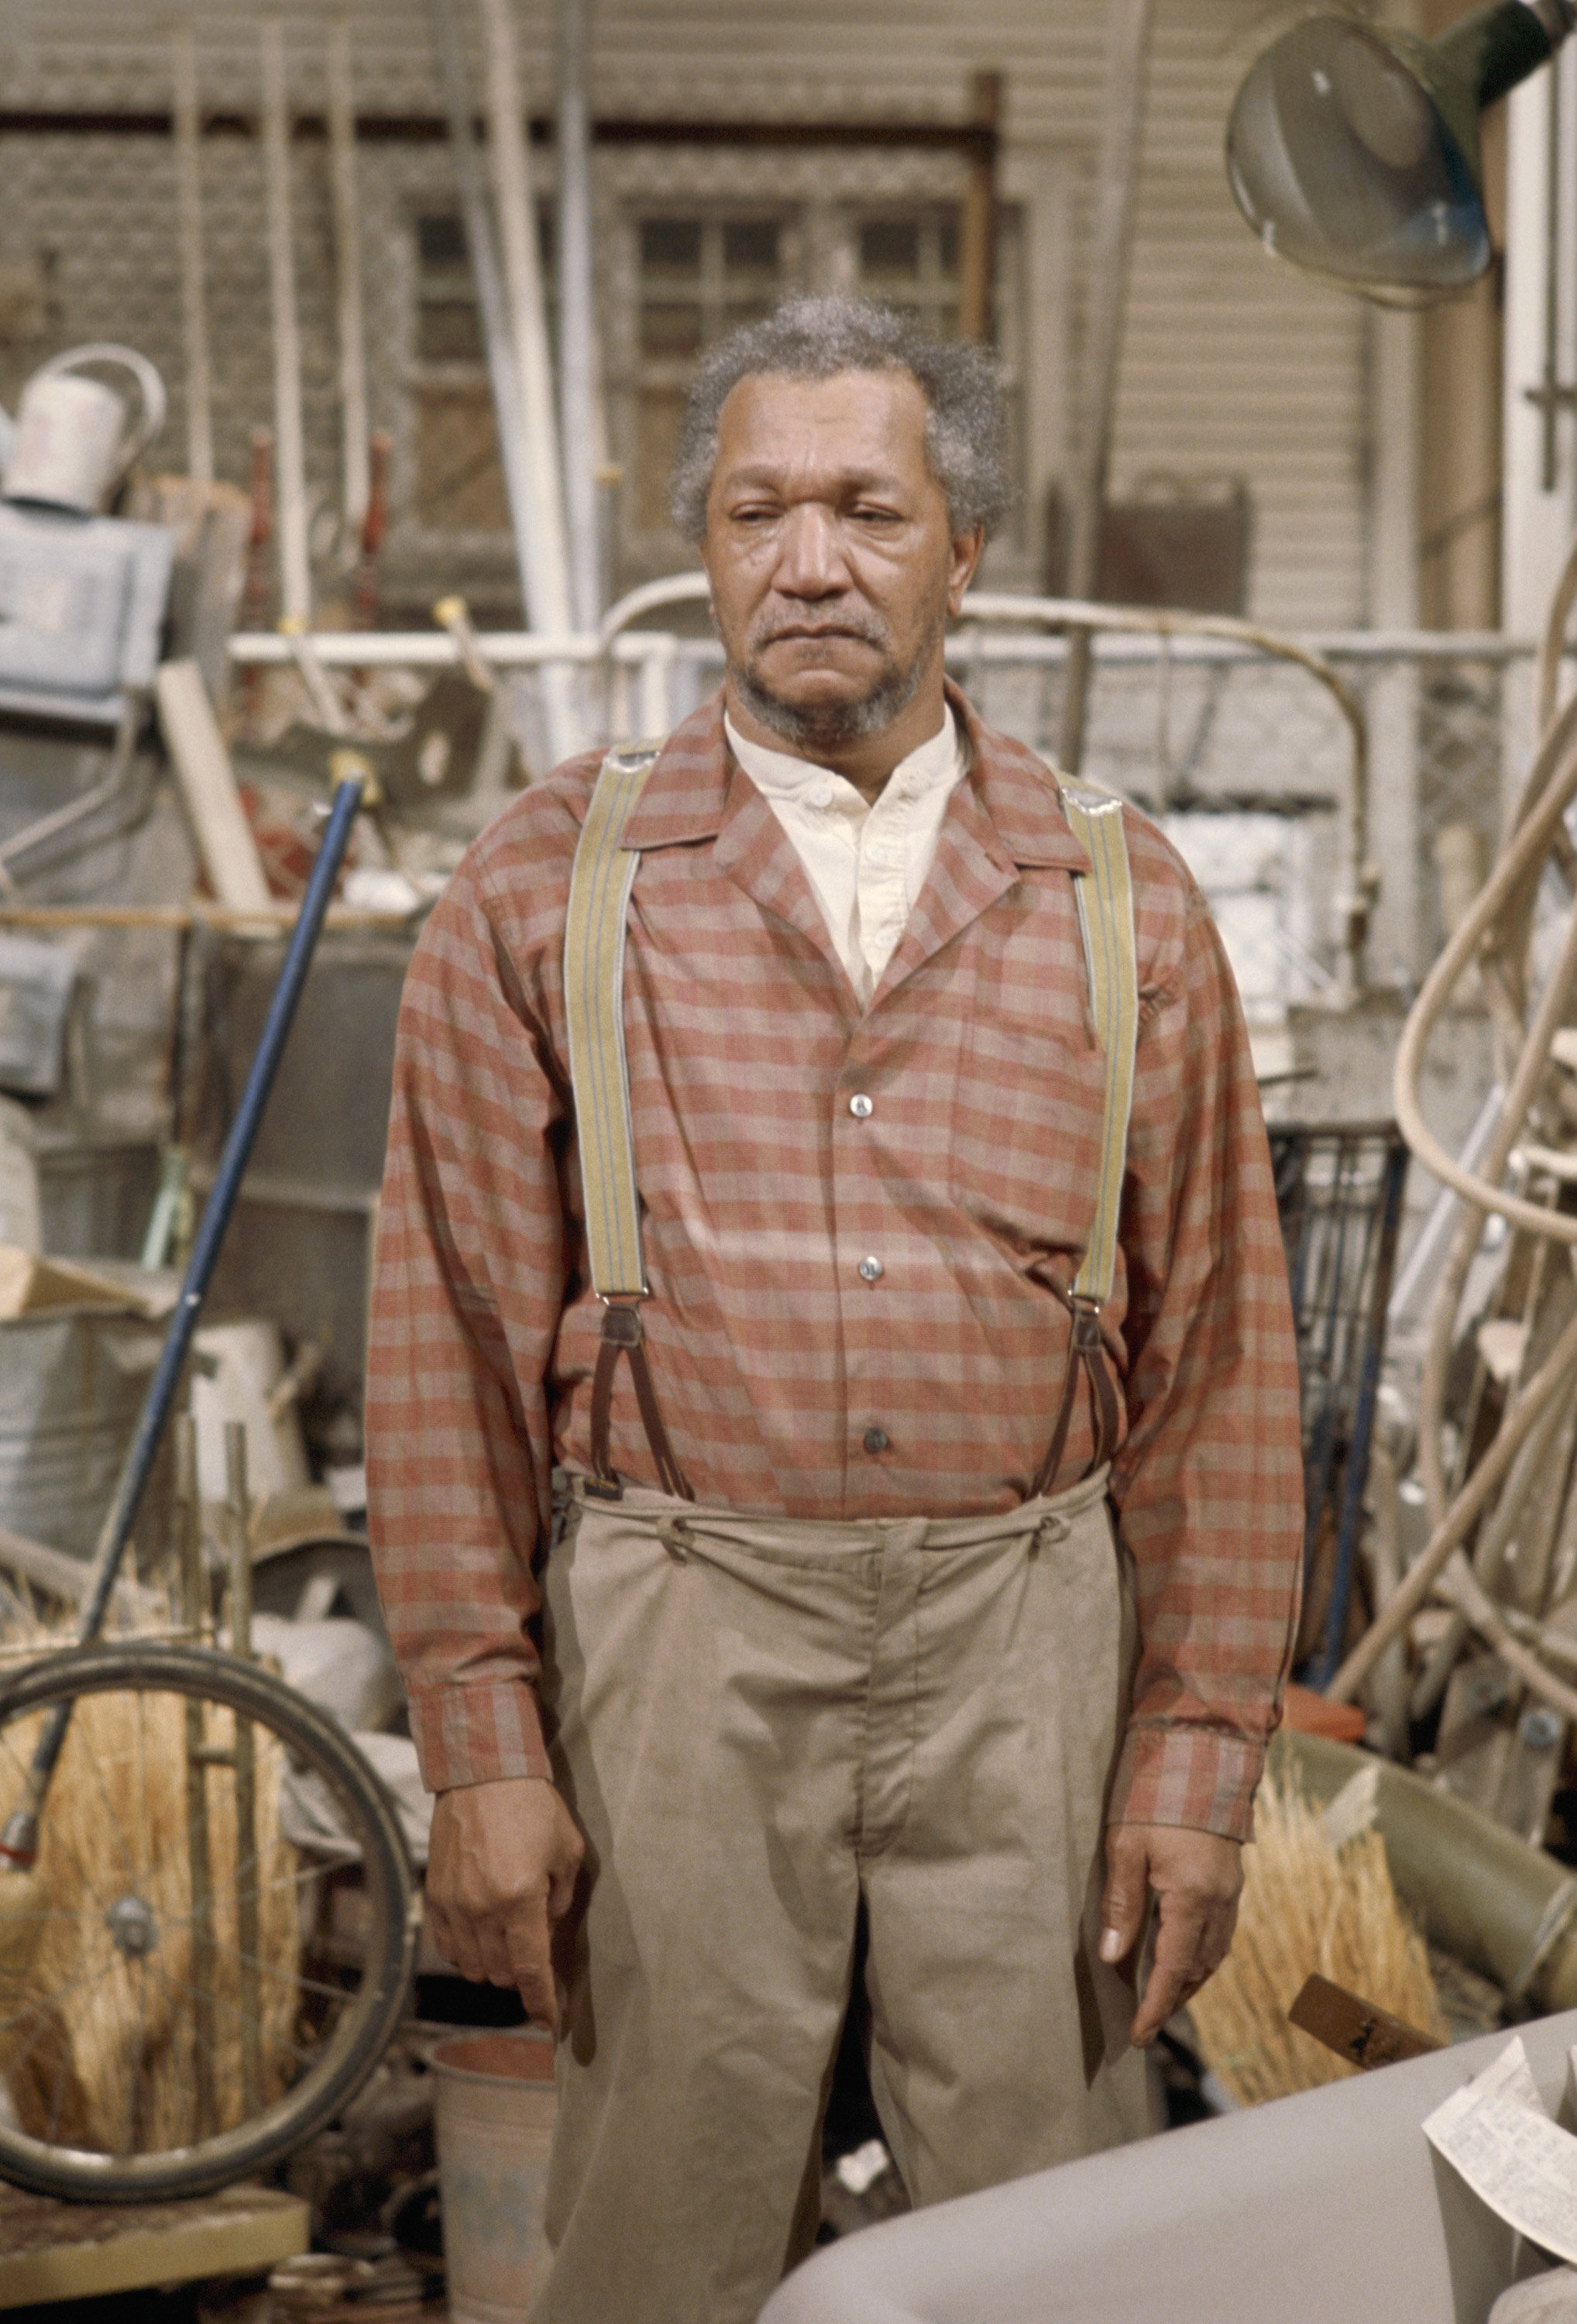 """Redd Foxx as Fred G. Sanford in an episode of """"Sanford and Son"""" aired on August 12, 1972 